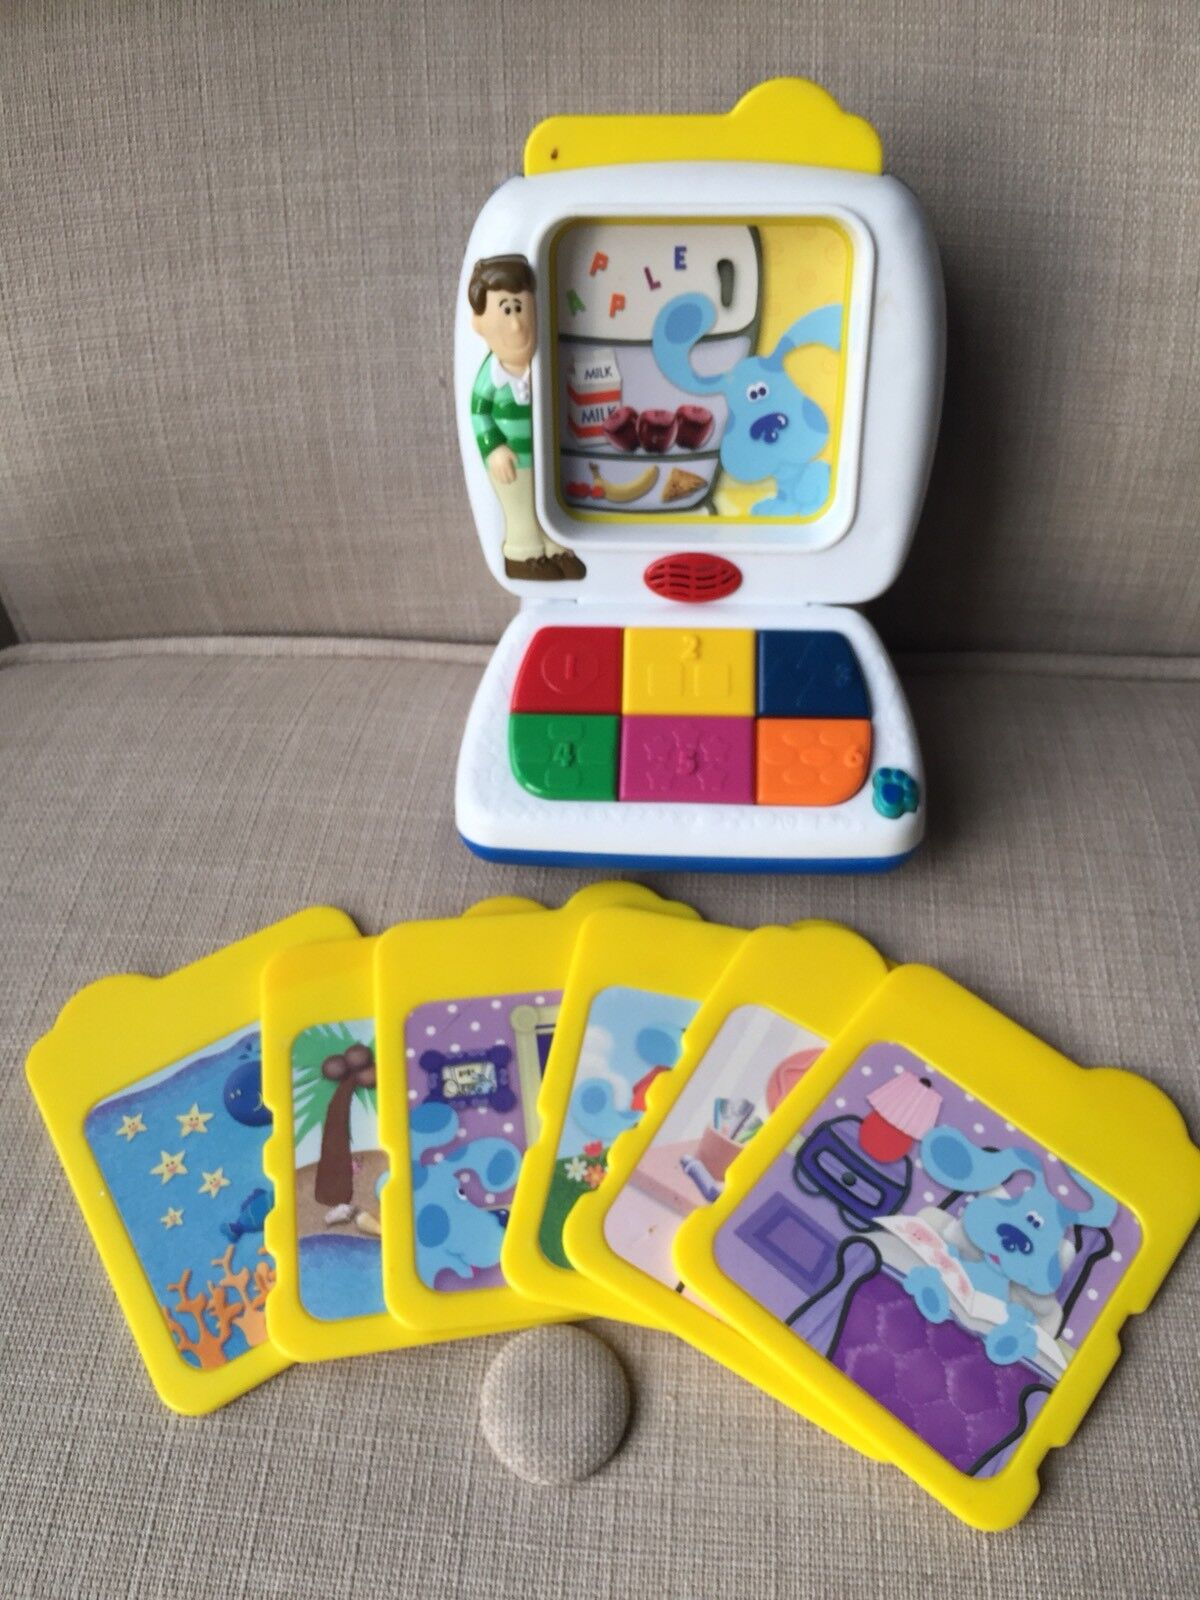 Blau'S CLUES TYCO TALKING LEARNING ELECTRONIC EDUCATIONAL TOY 2000